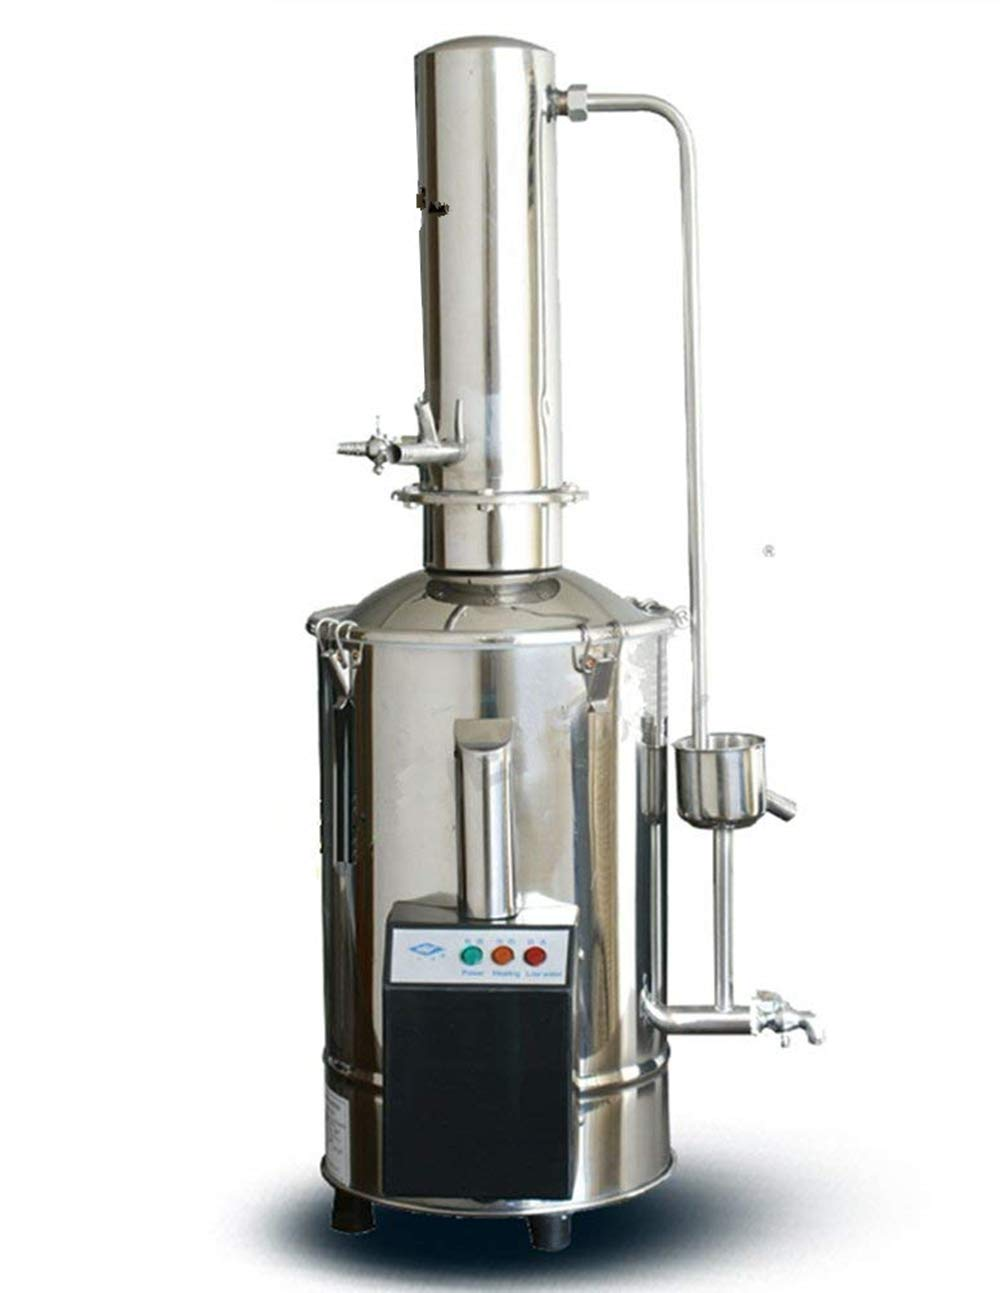 CGOLDENWALL Auto-Control Electric Water Distiller Water Distilling Machine Distilled Water 5L/h(220V)